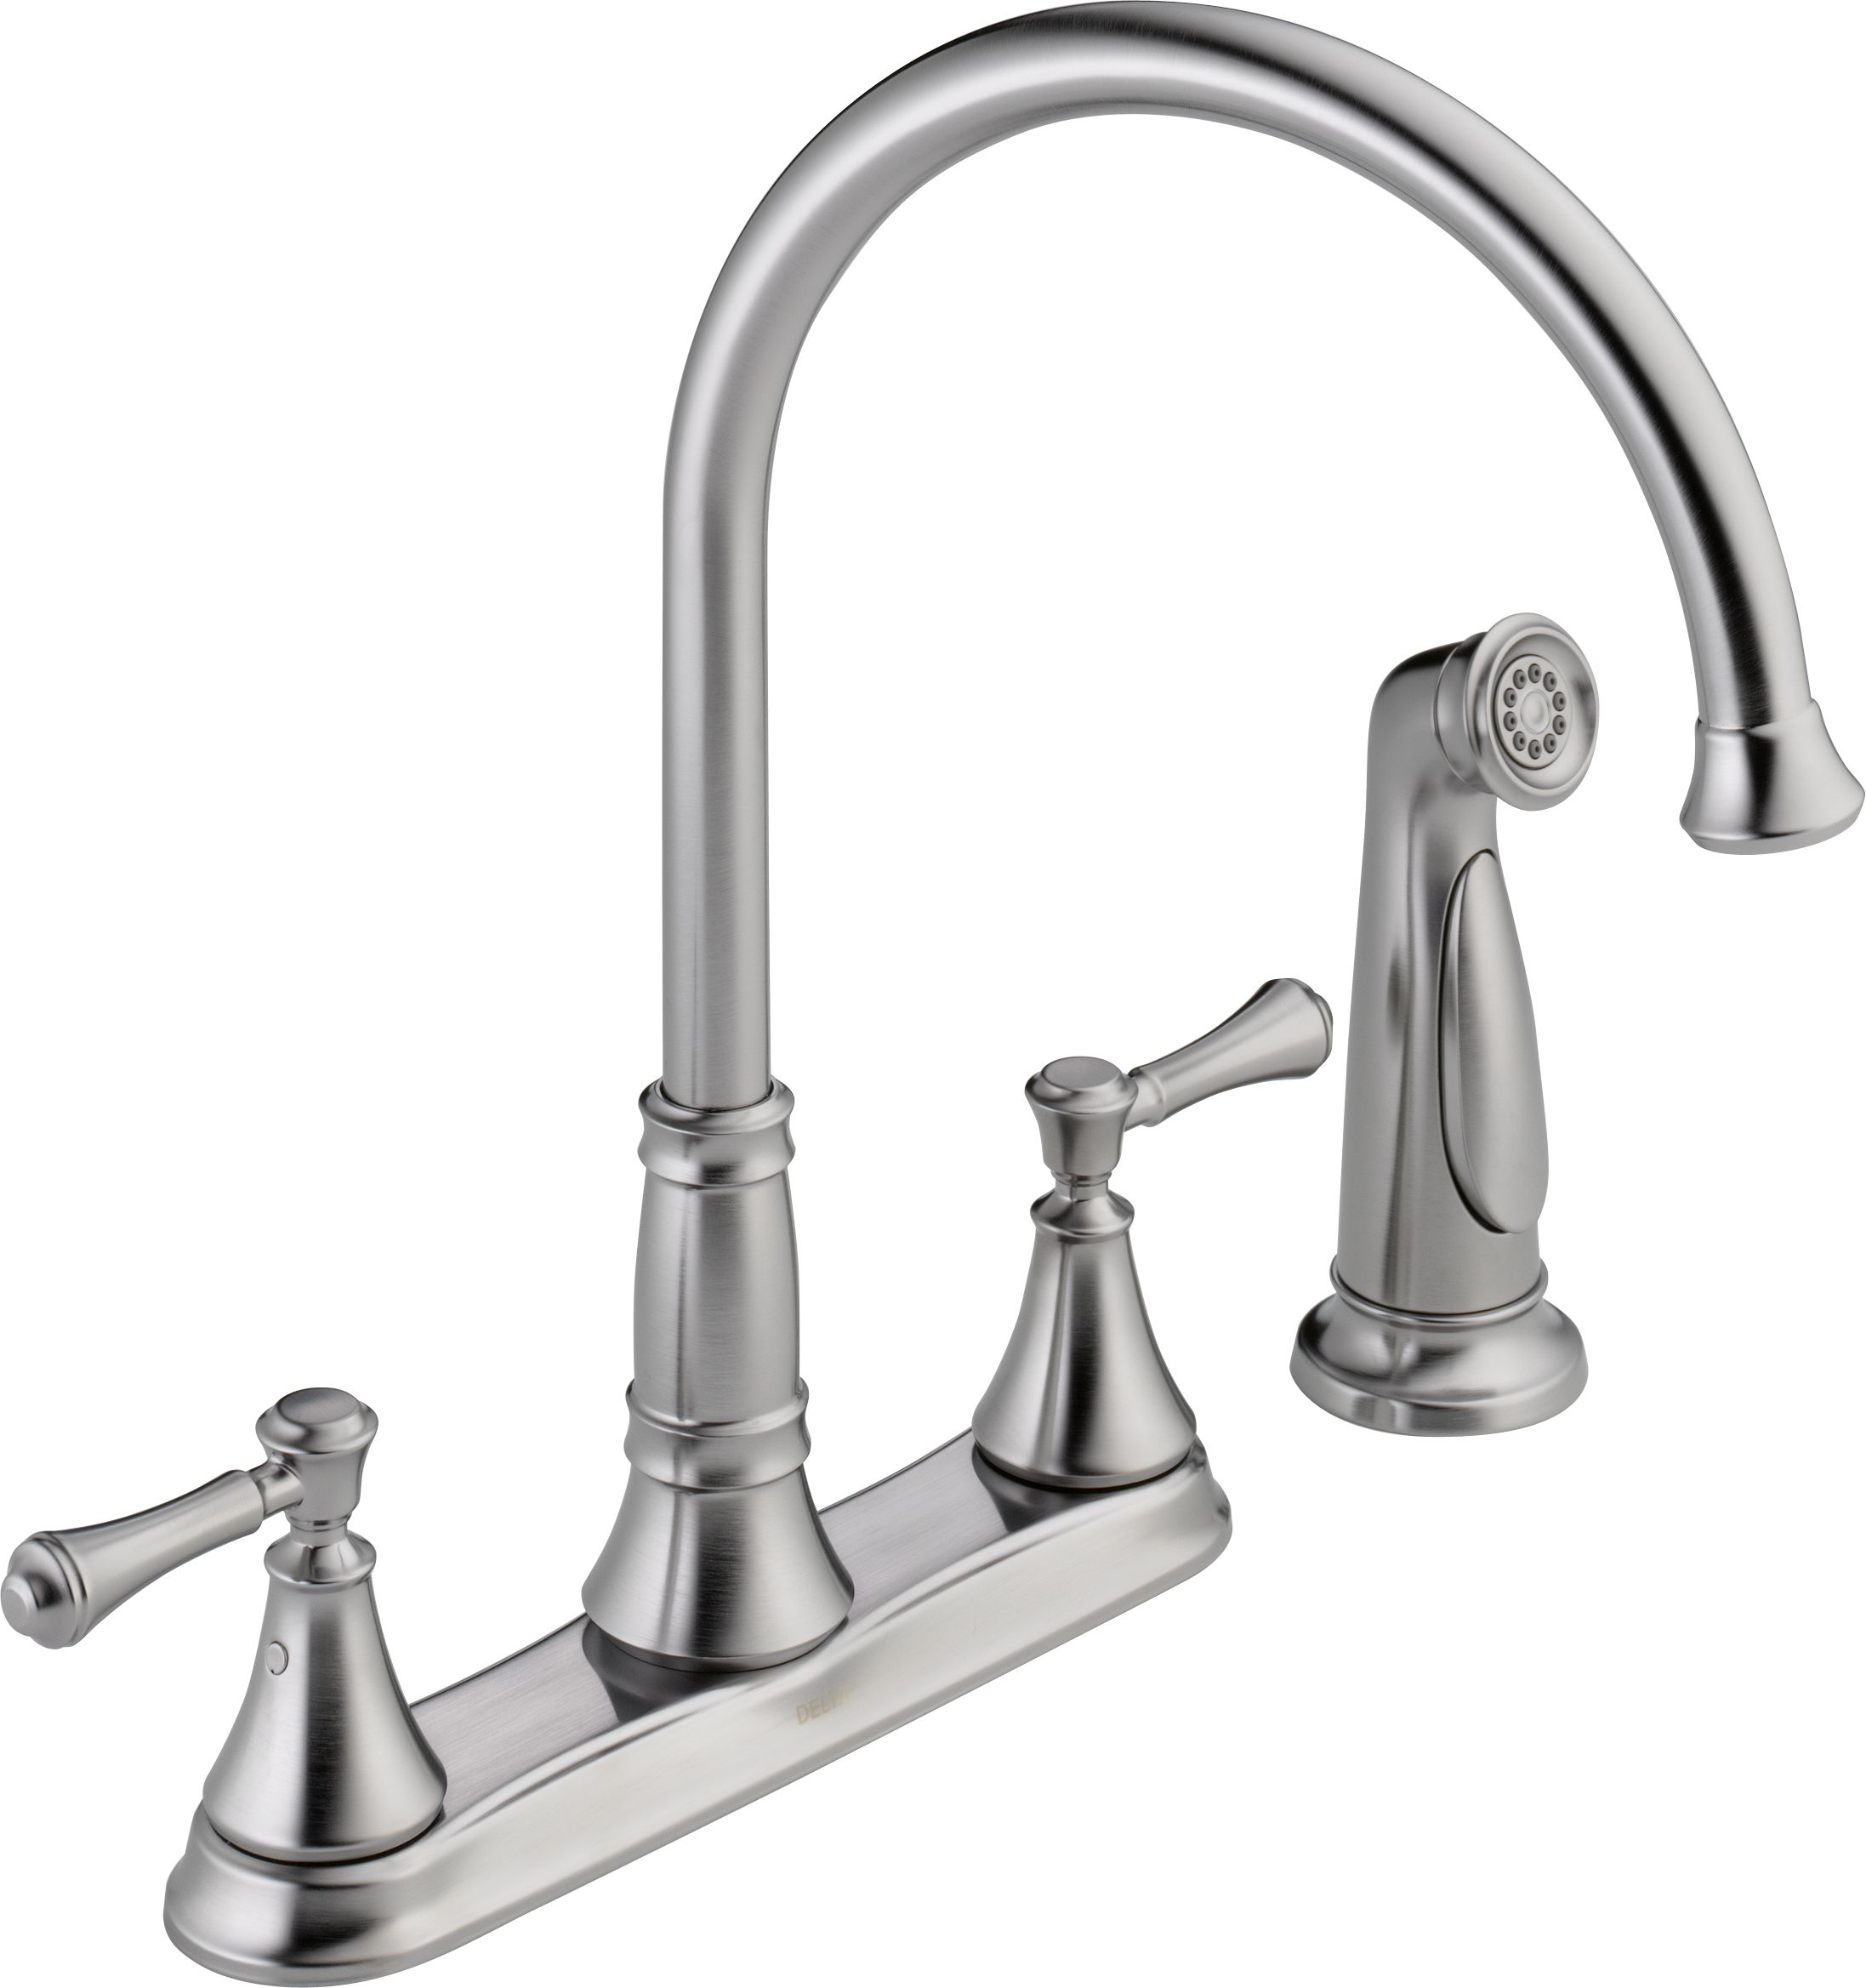 delta plumbing product kitchen gerber viper handle faucet faucets single